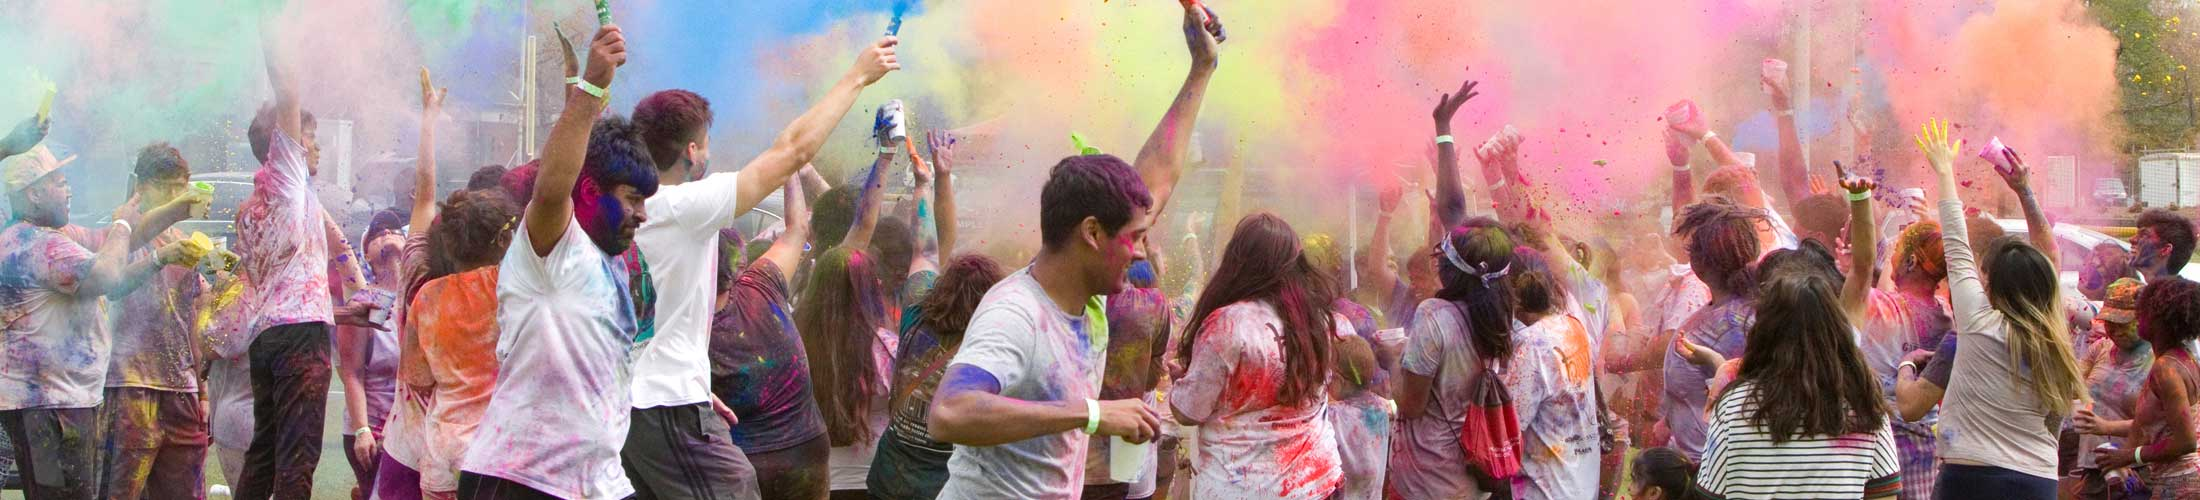 Students throwing color in event